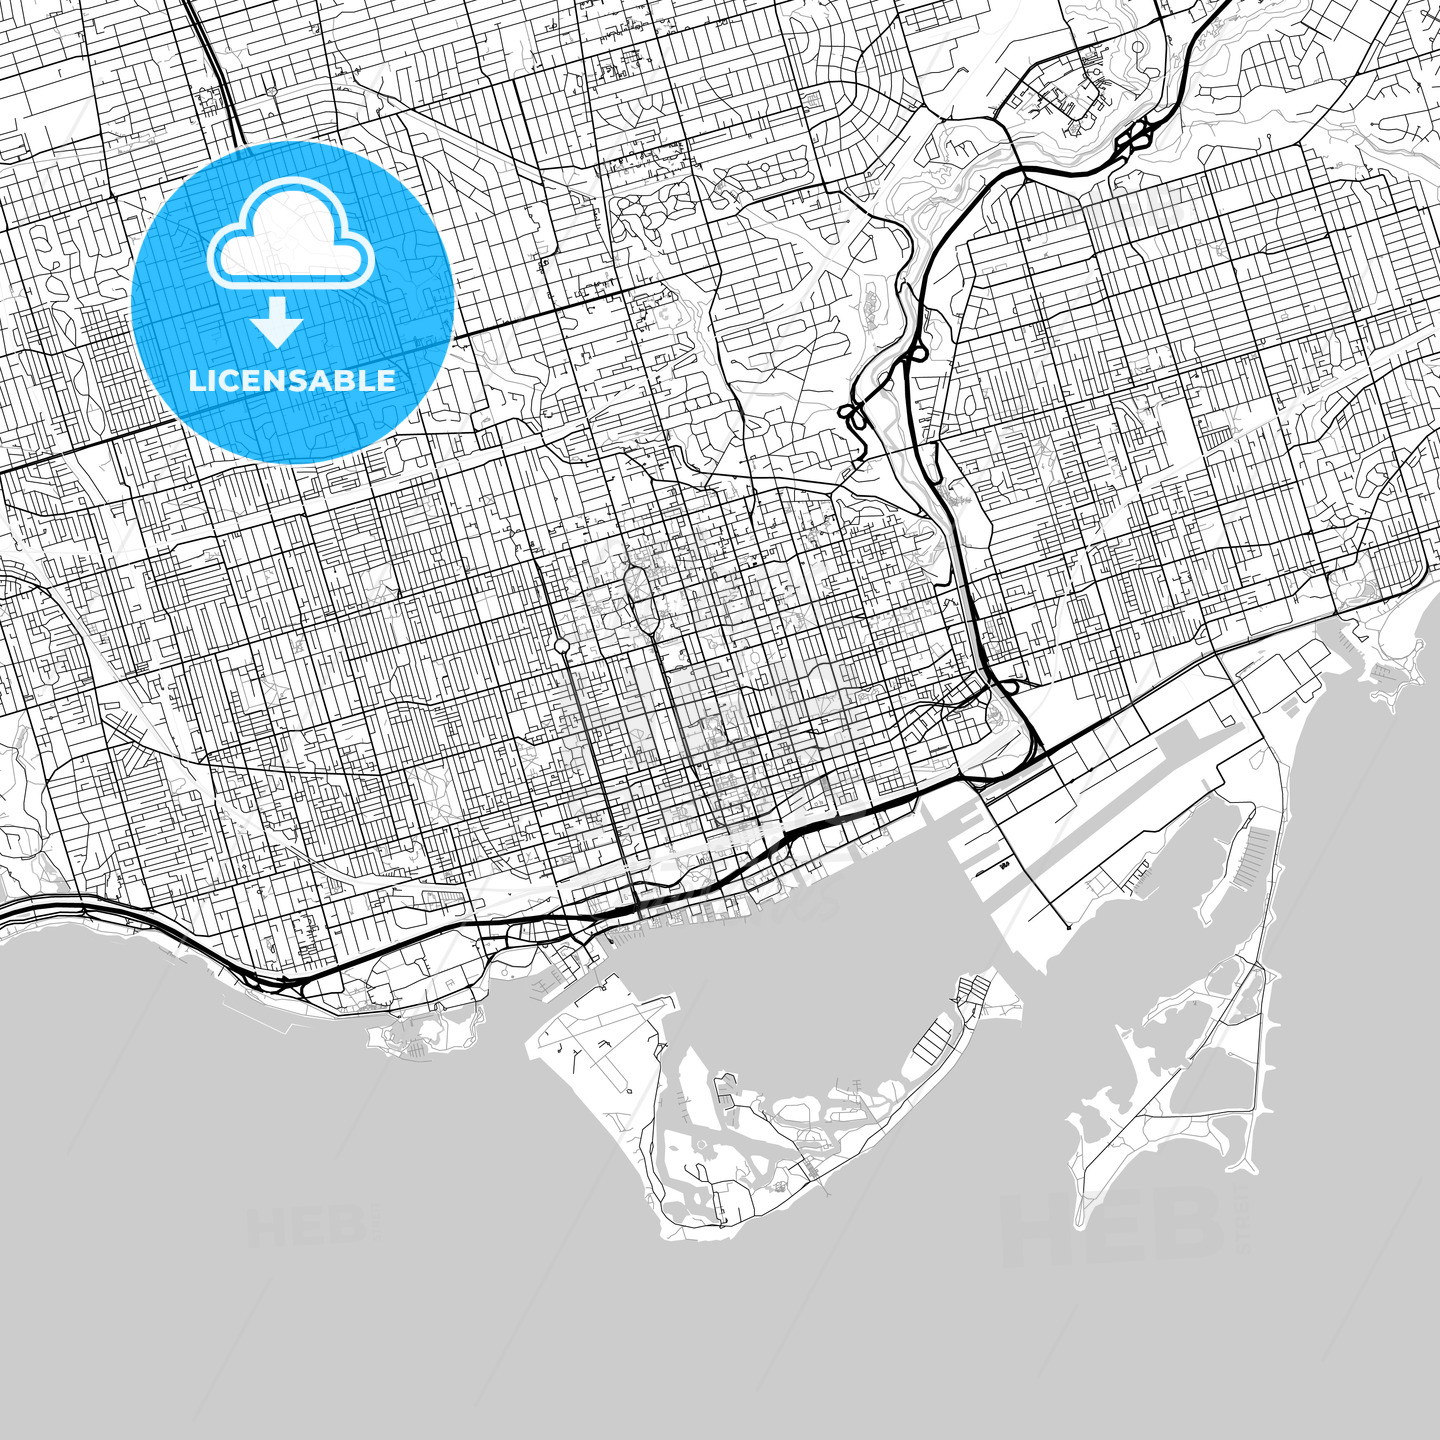 Toronto, Ontario, Downtown City Map, Light - HEBSTREITS